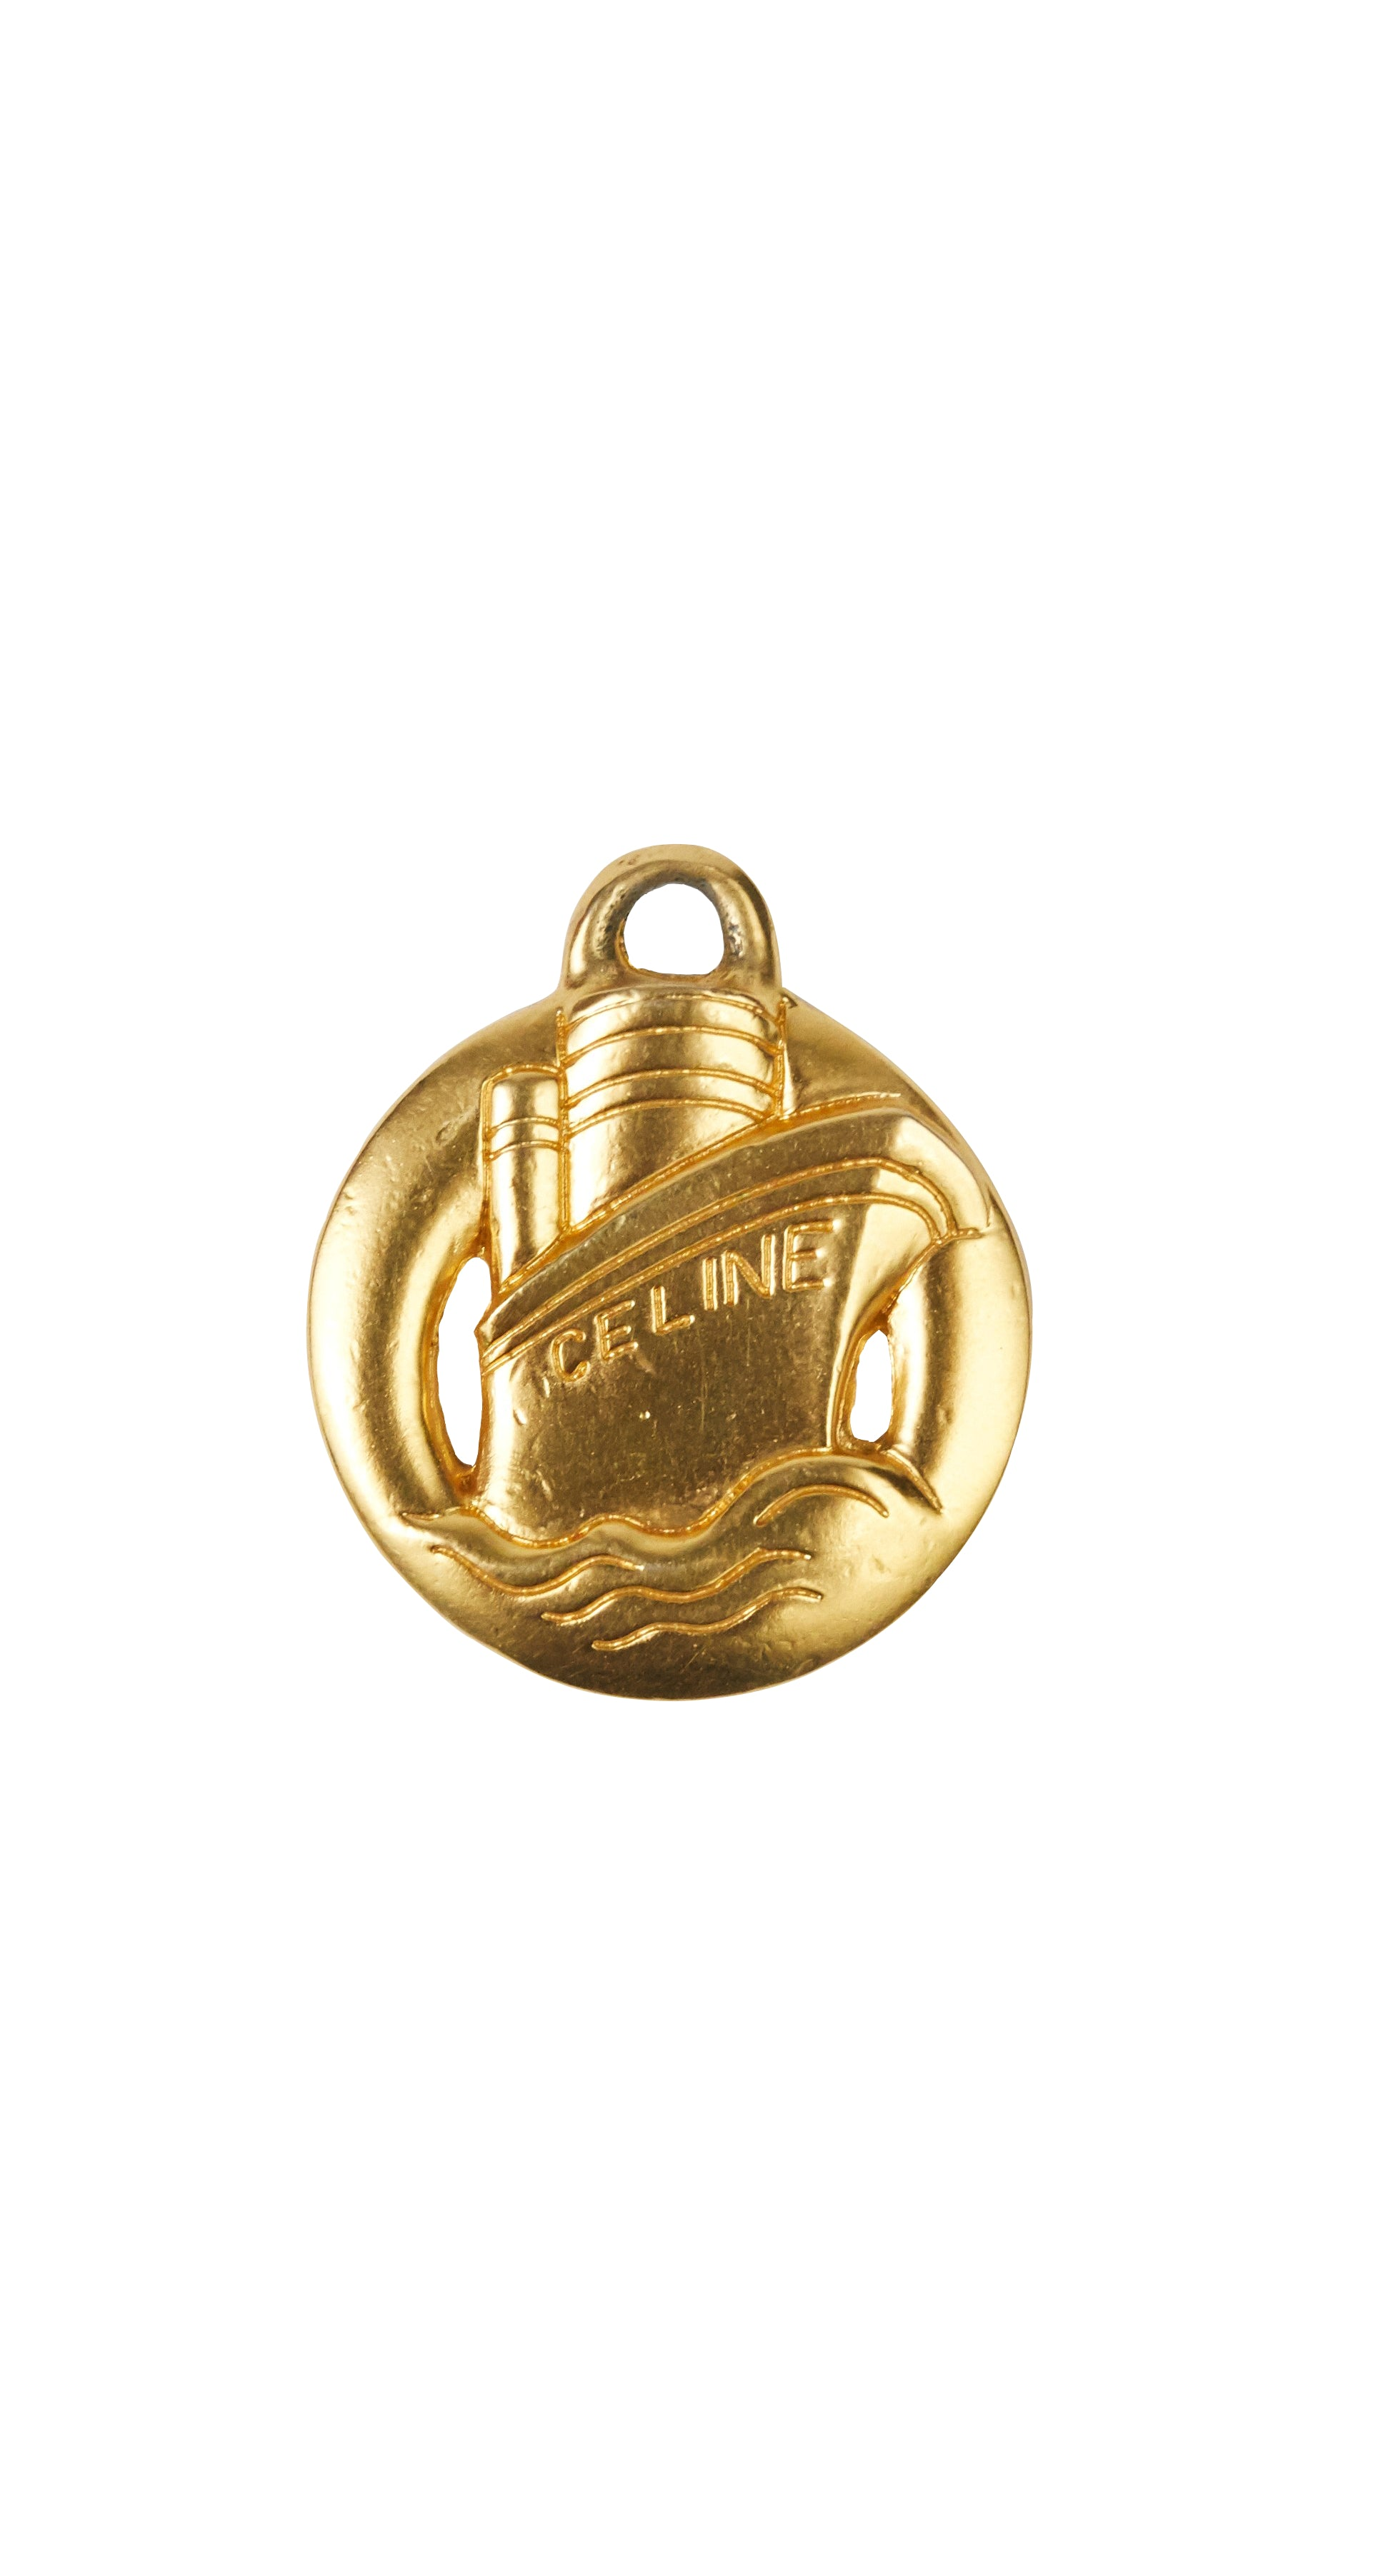 1990s Ship Motif Gold-Plated Pendant Charm